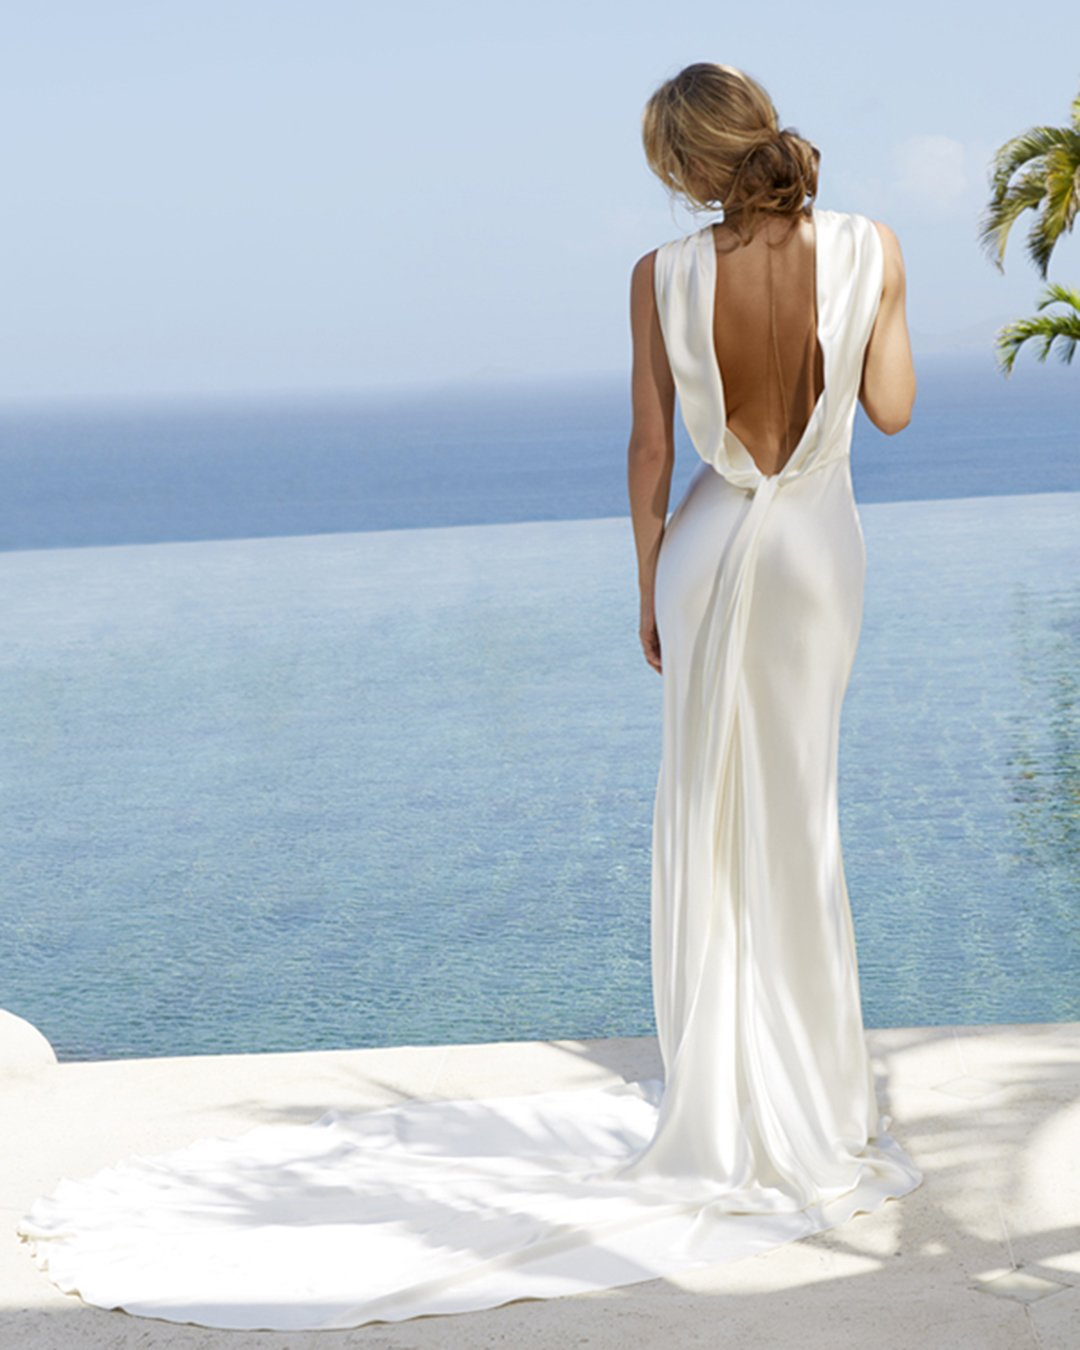 beach wedding dresses sheath simple low back amanda